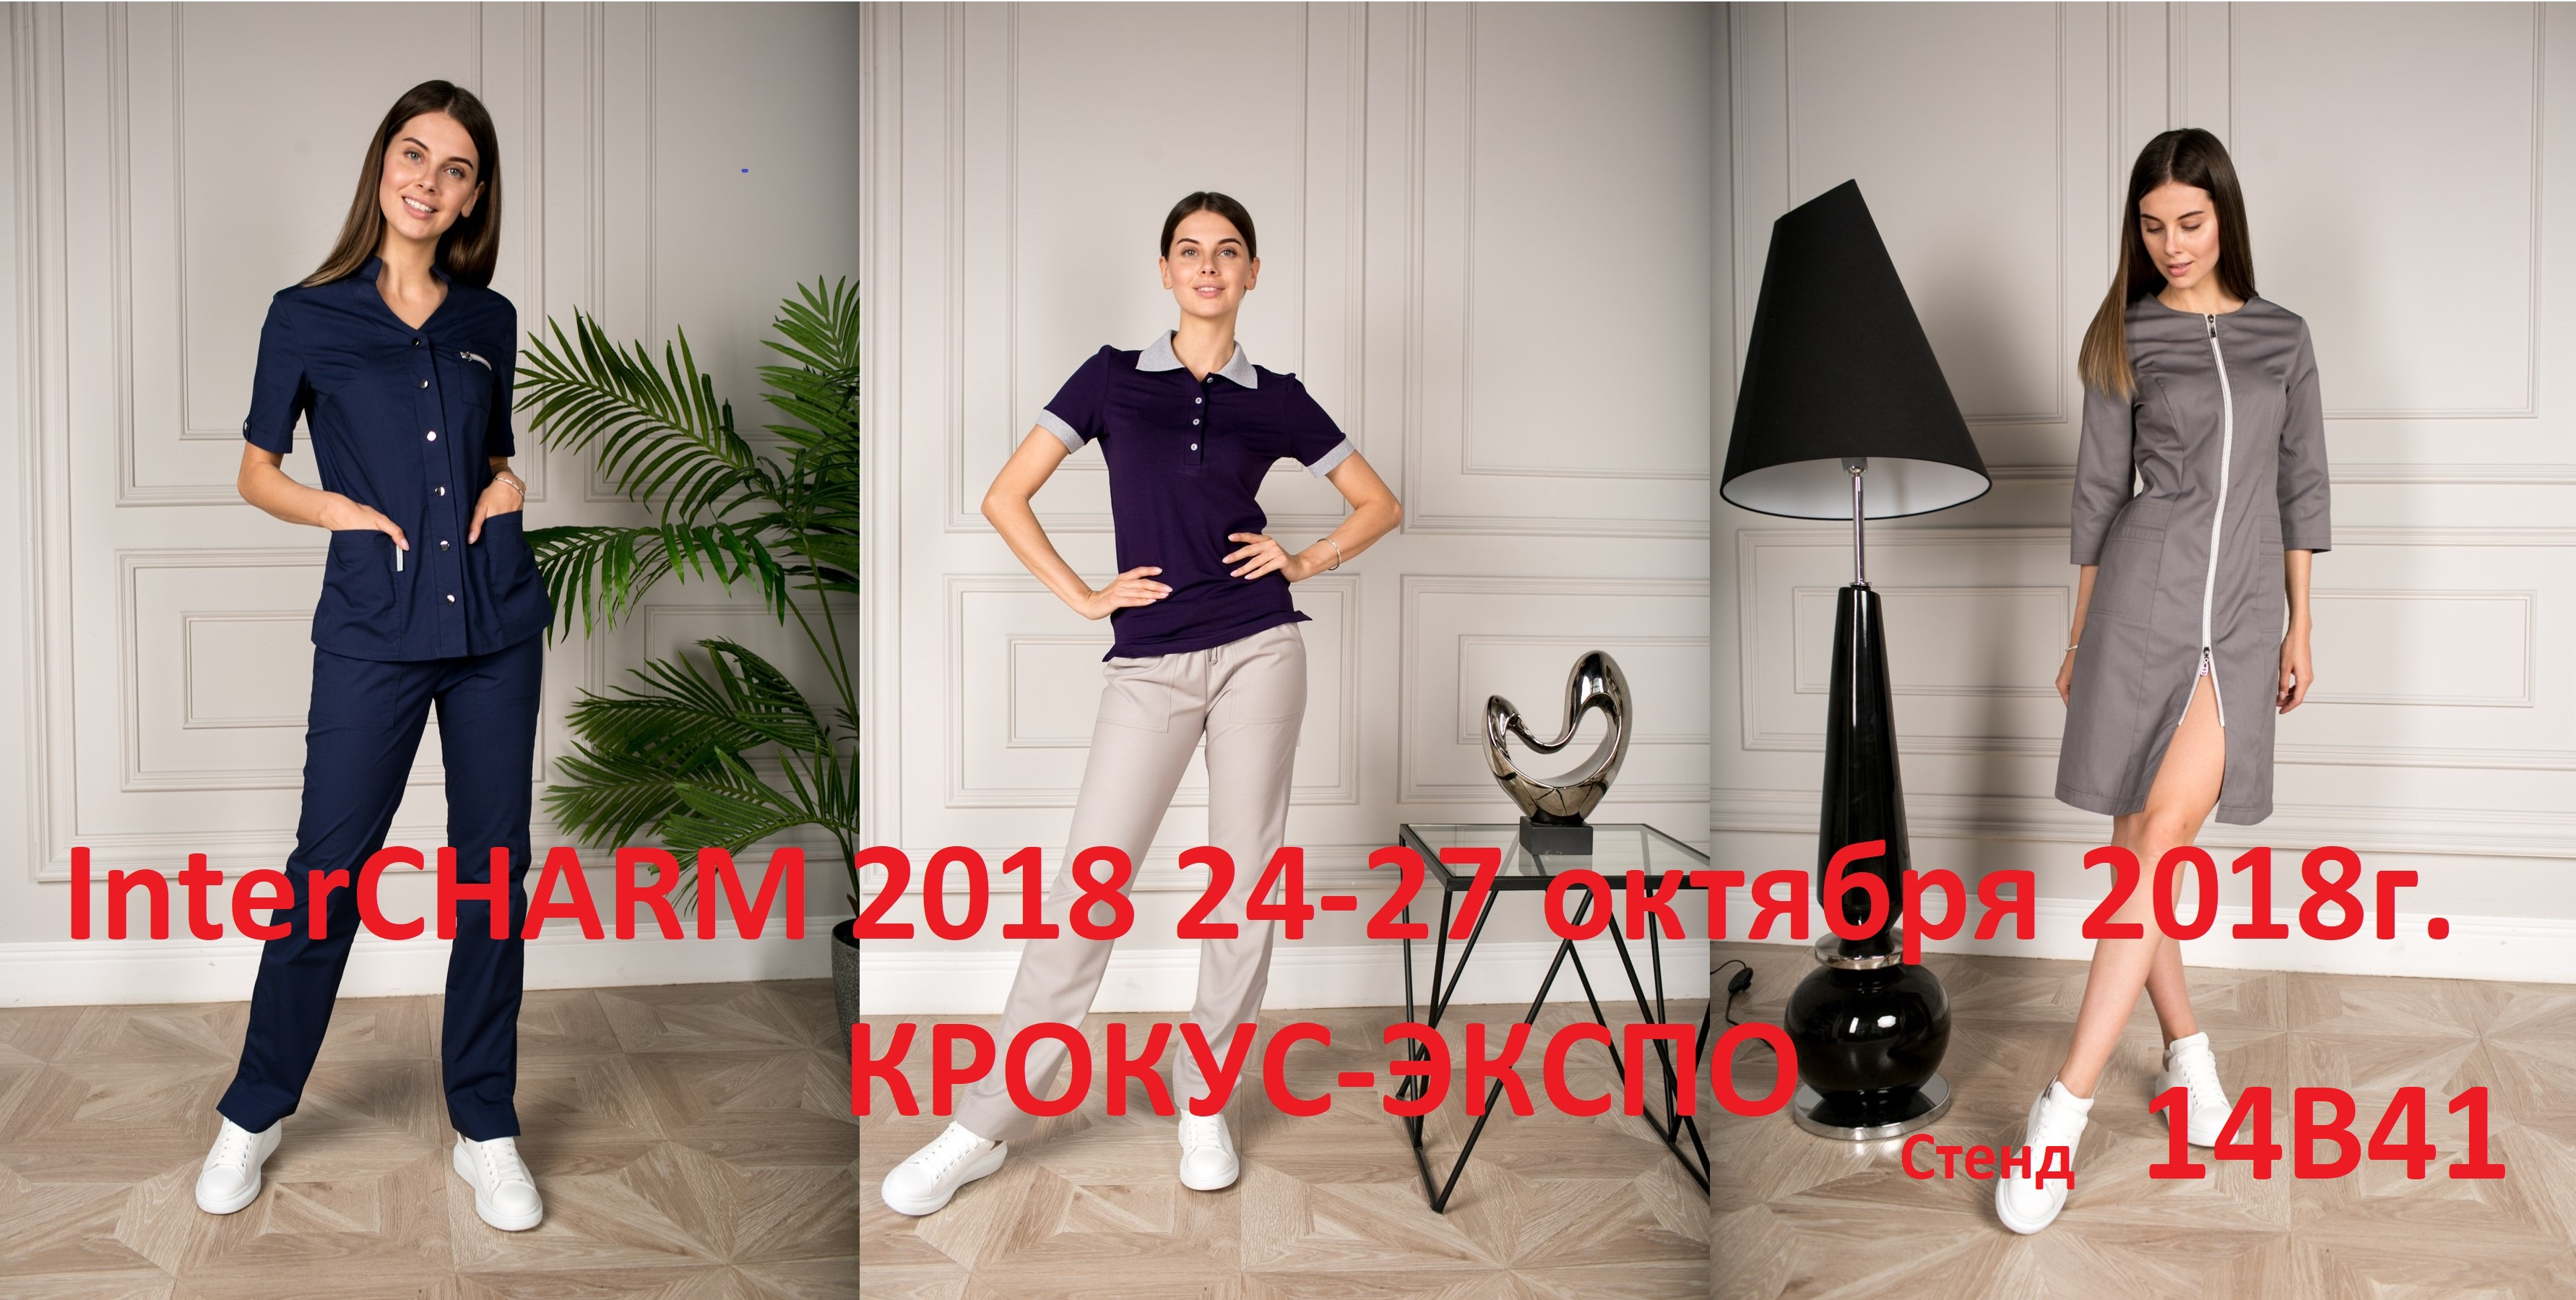 InterCHARM 2018 24-27 октября 2018г Стенд 14B41